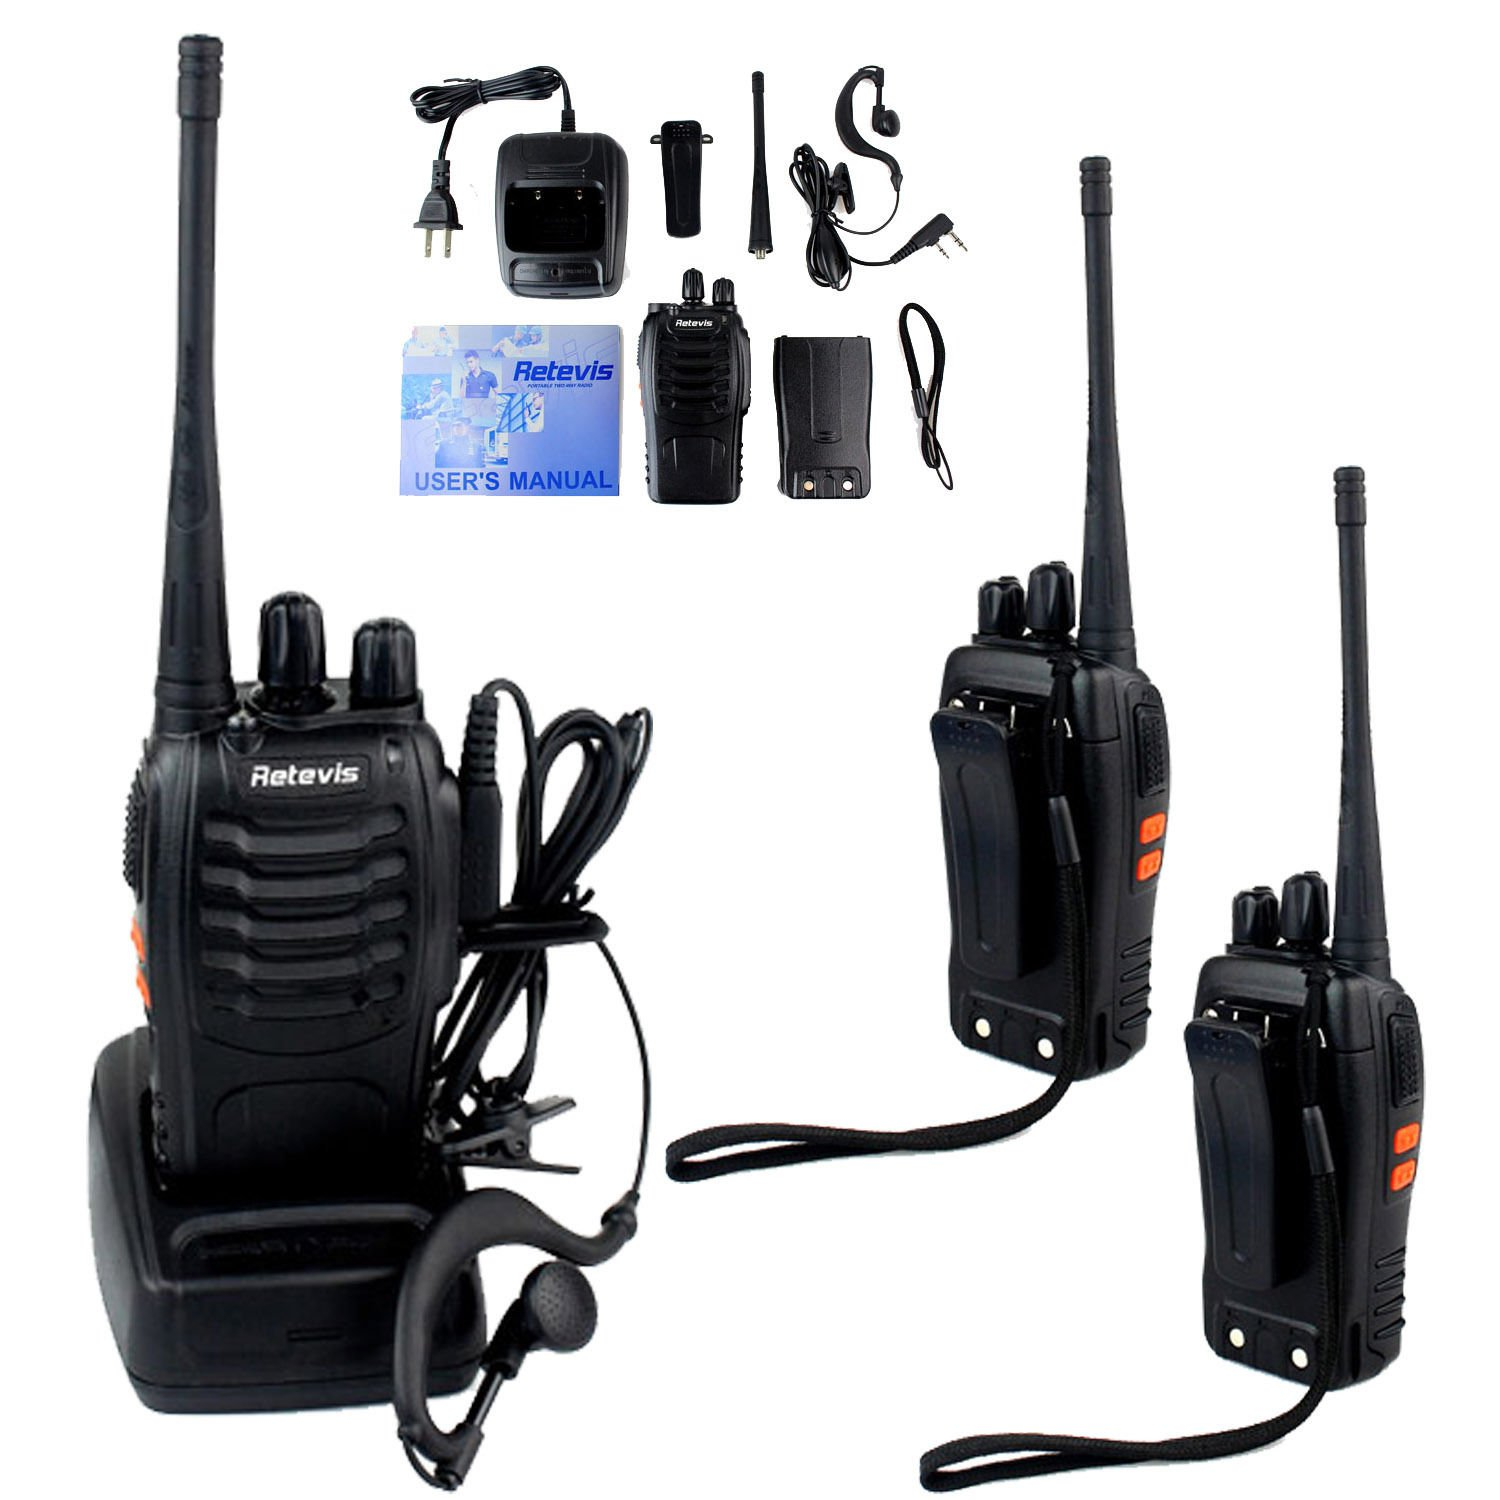 3x Retevis H777 Walkie Talkie CTCSS/DCS UHF 5W 16CH 2-Way Radio,Earpiece